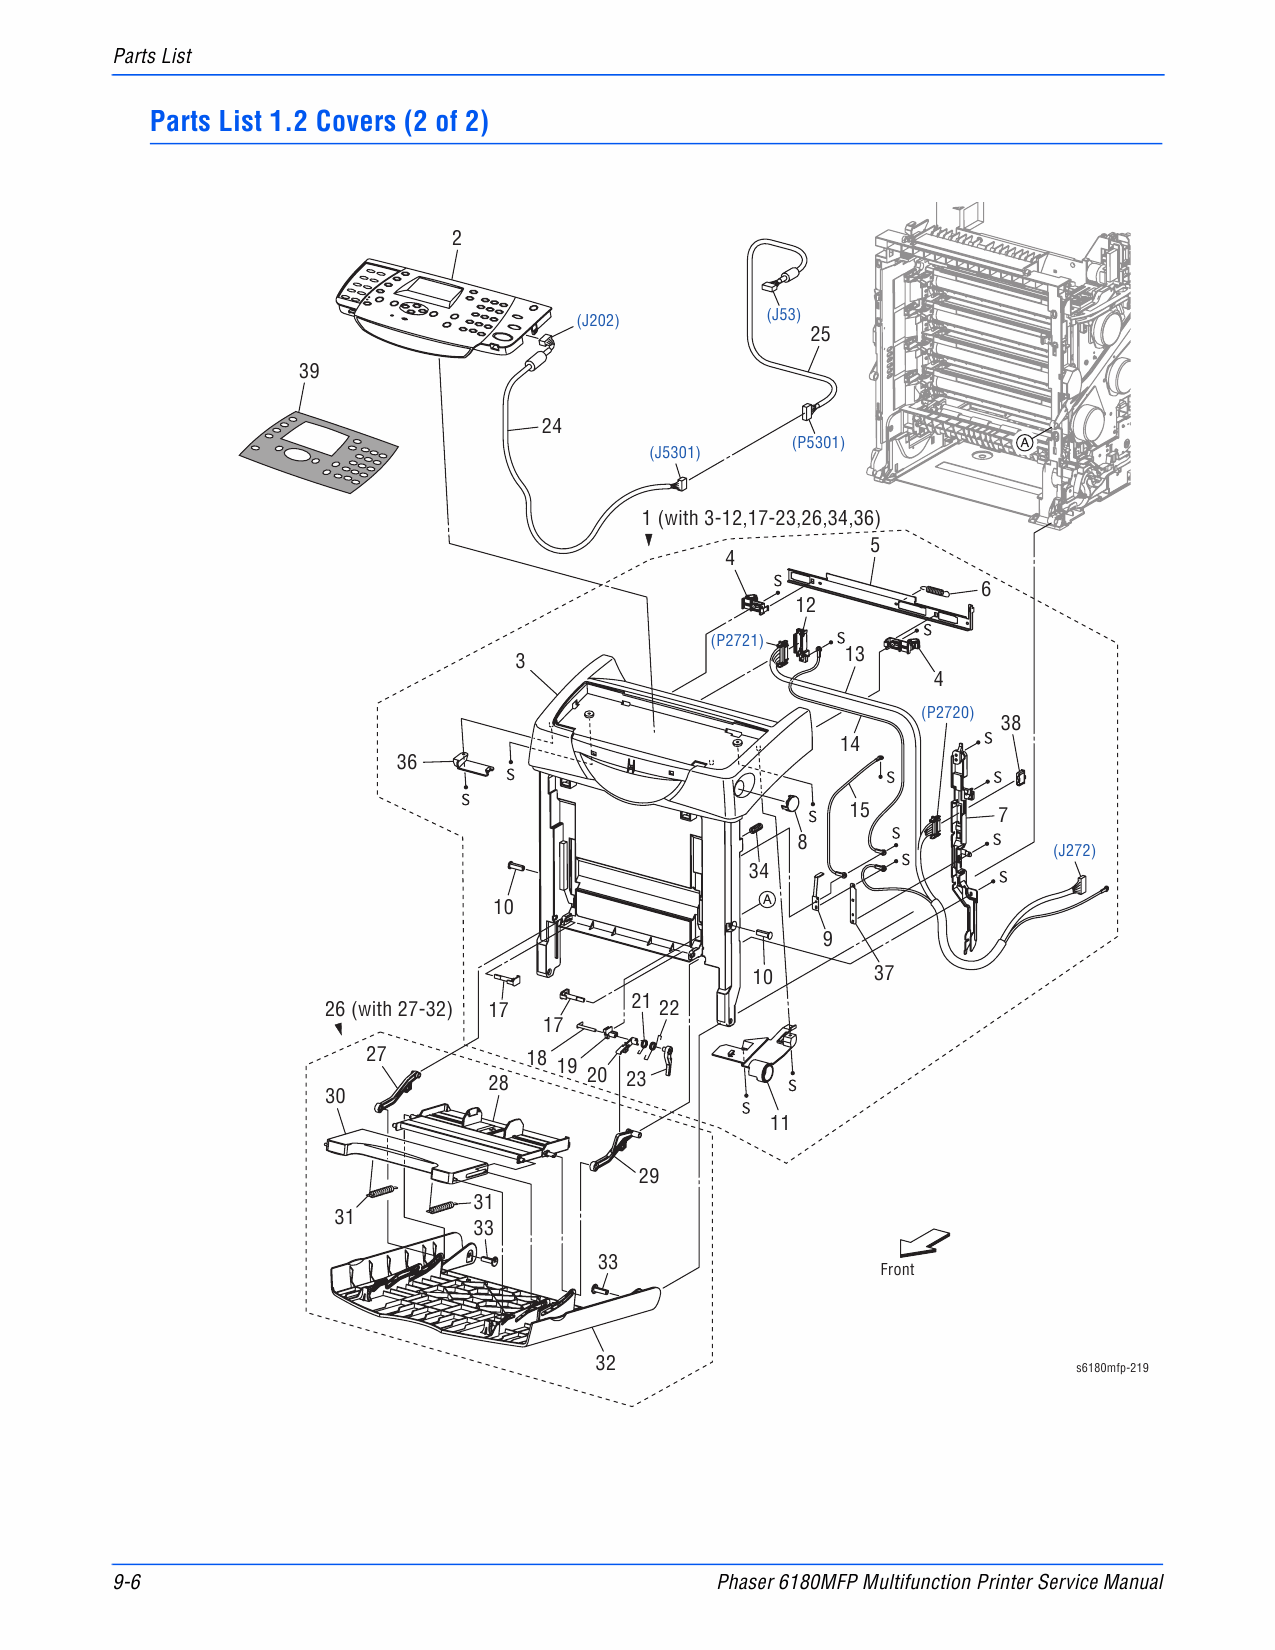 Xerox Phaser 6180 Mfp Parts List And Service Manual